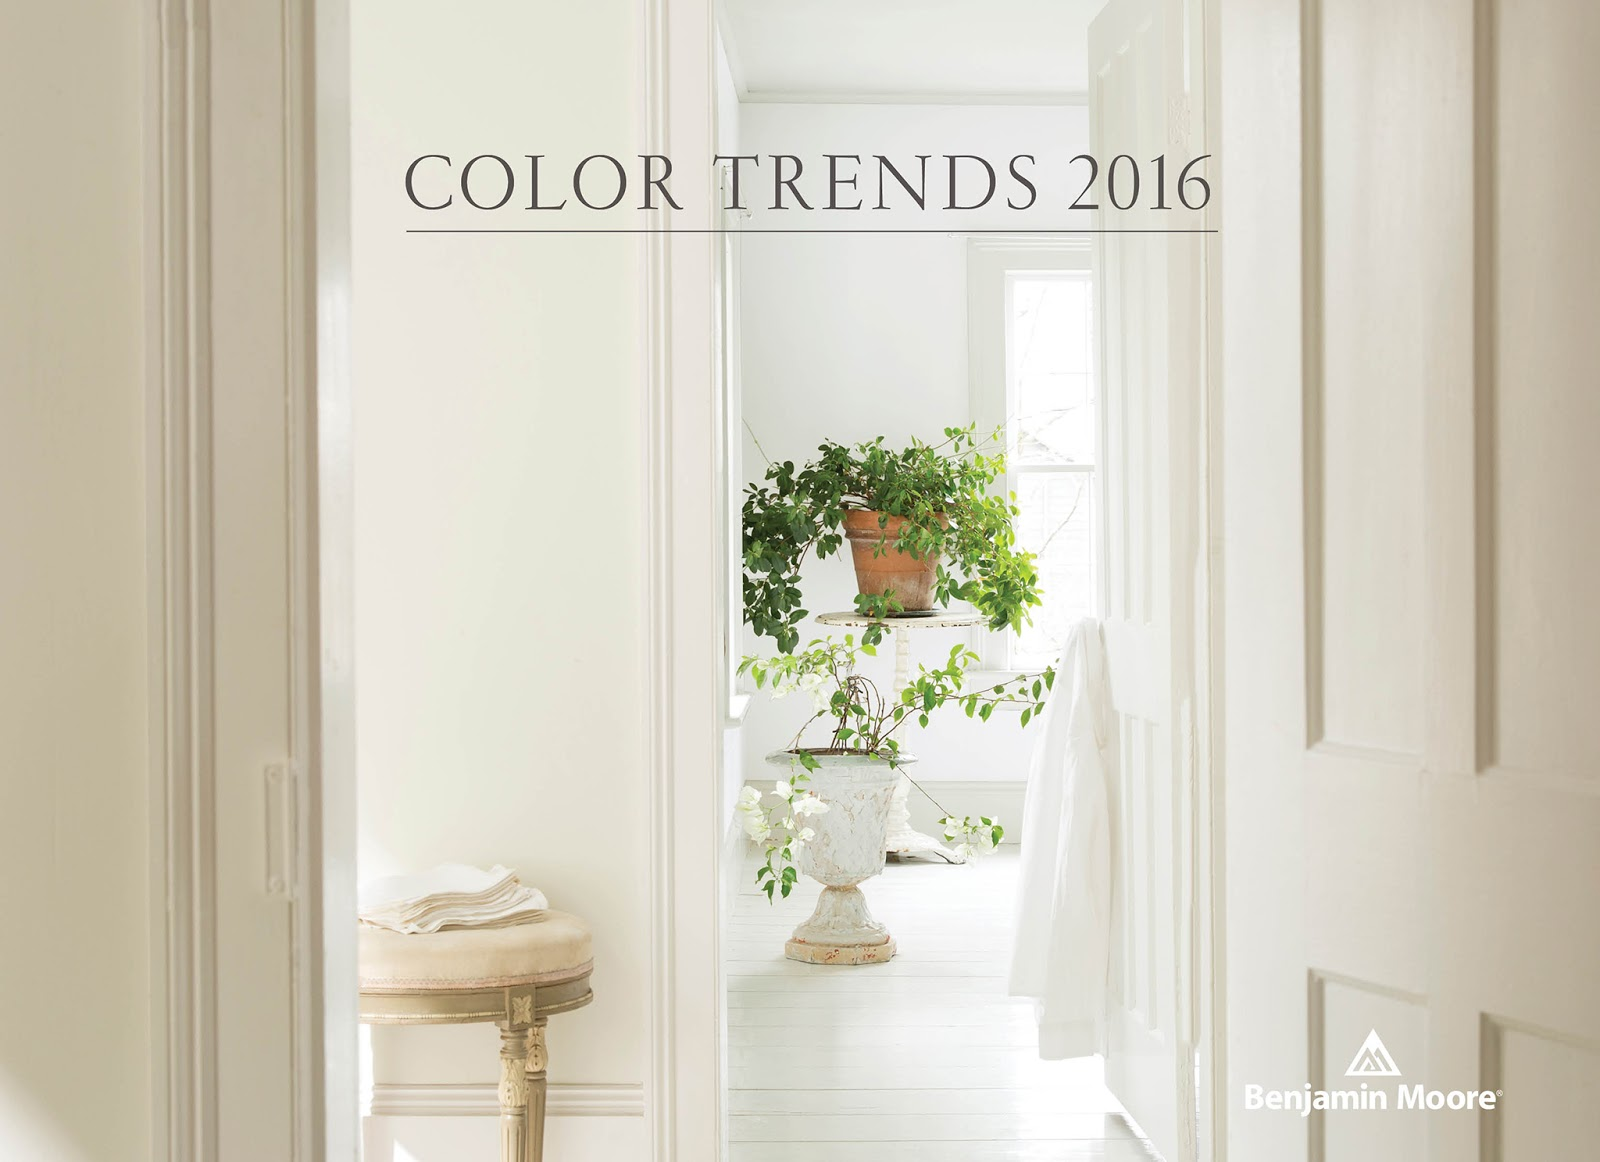 Color Leader Reveals Trends 2016 Highlighting White As A Timeless And Versatile Design Statement